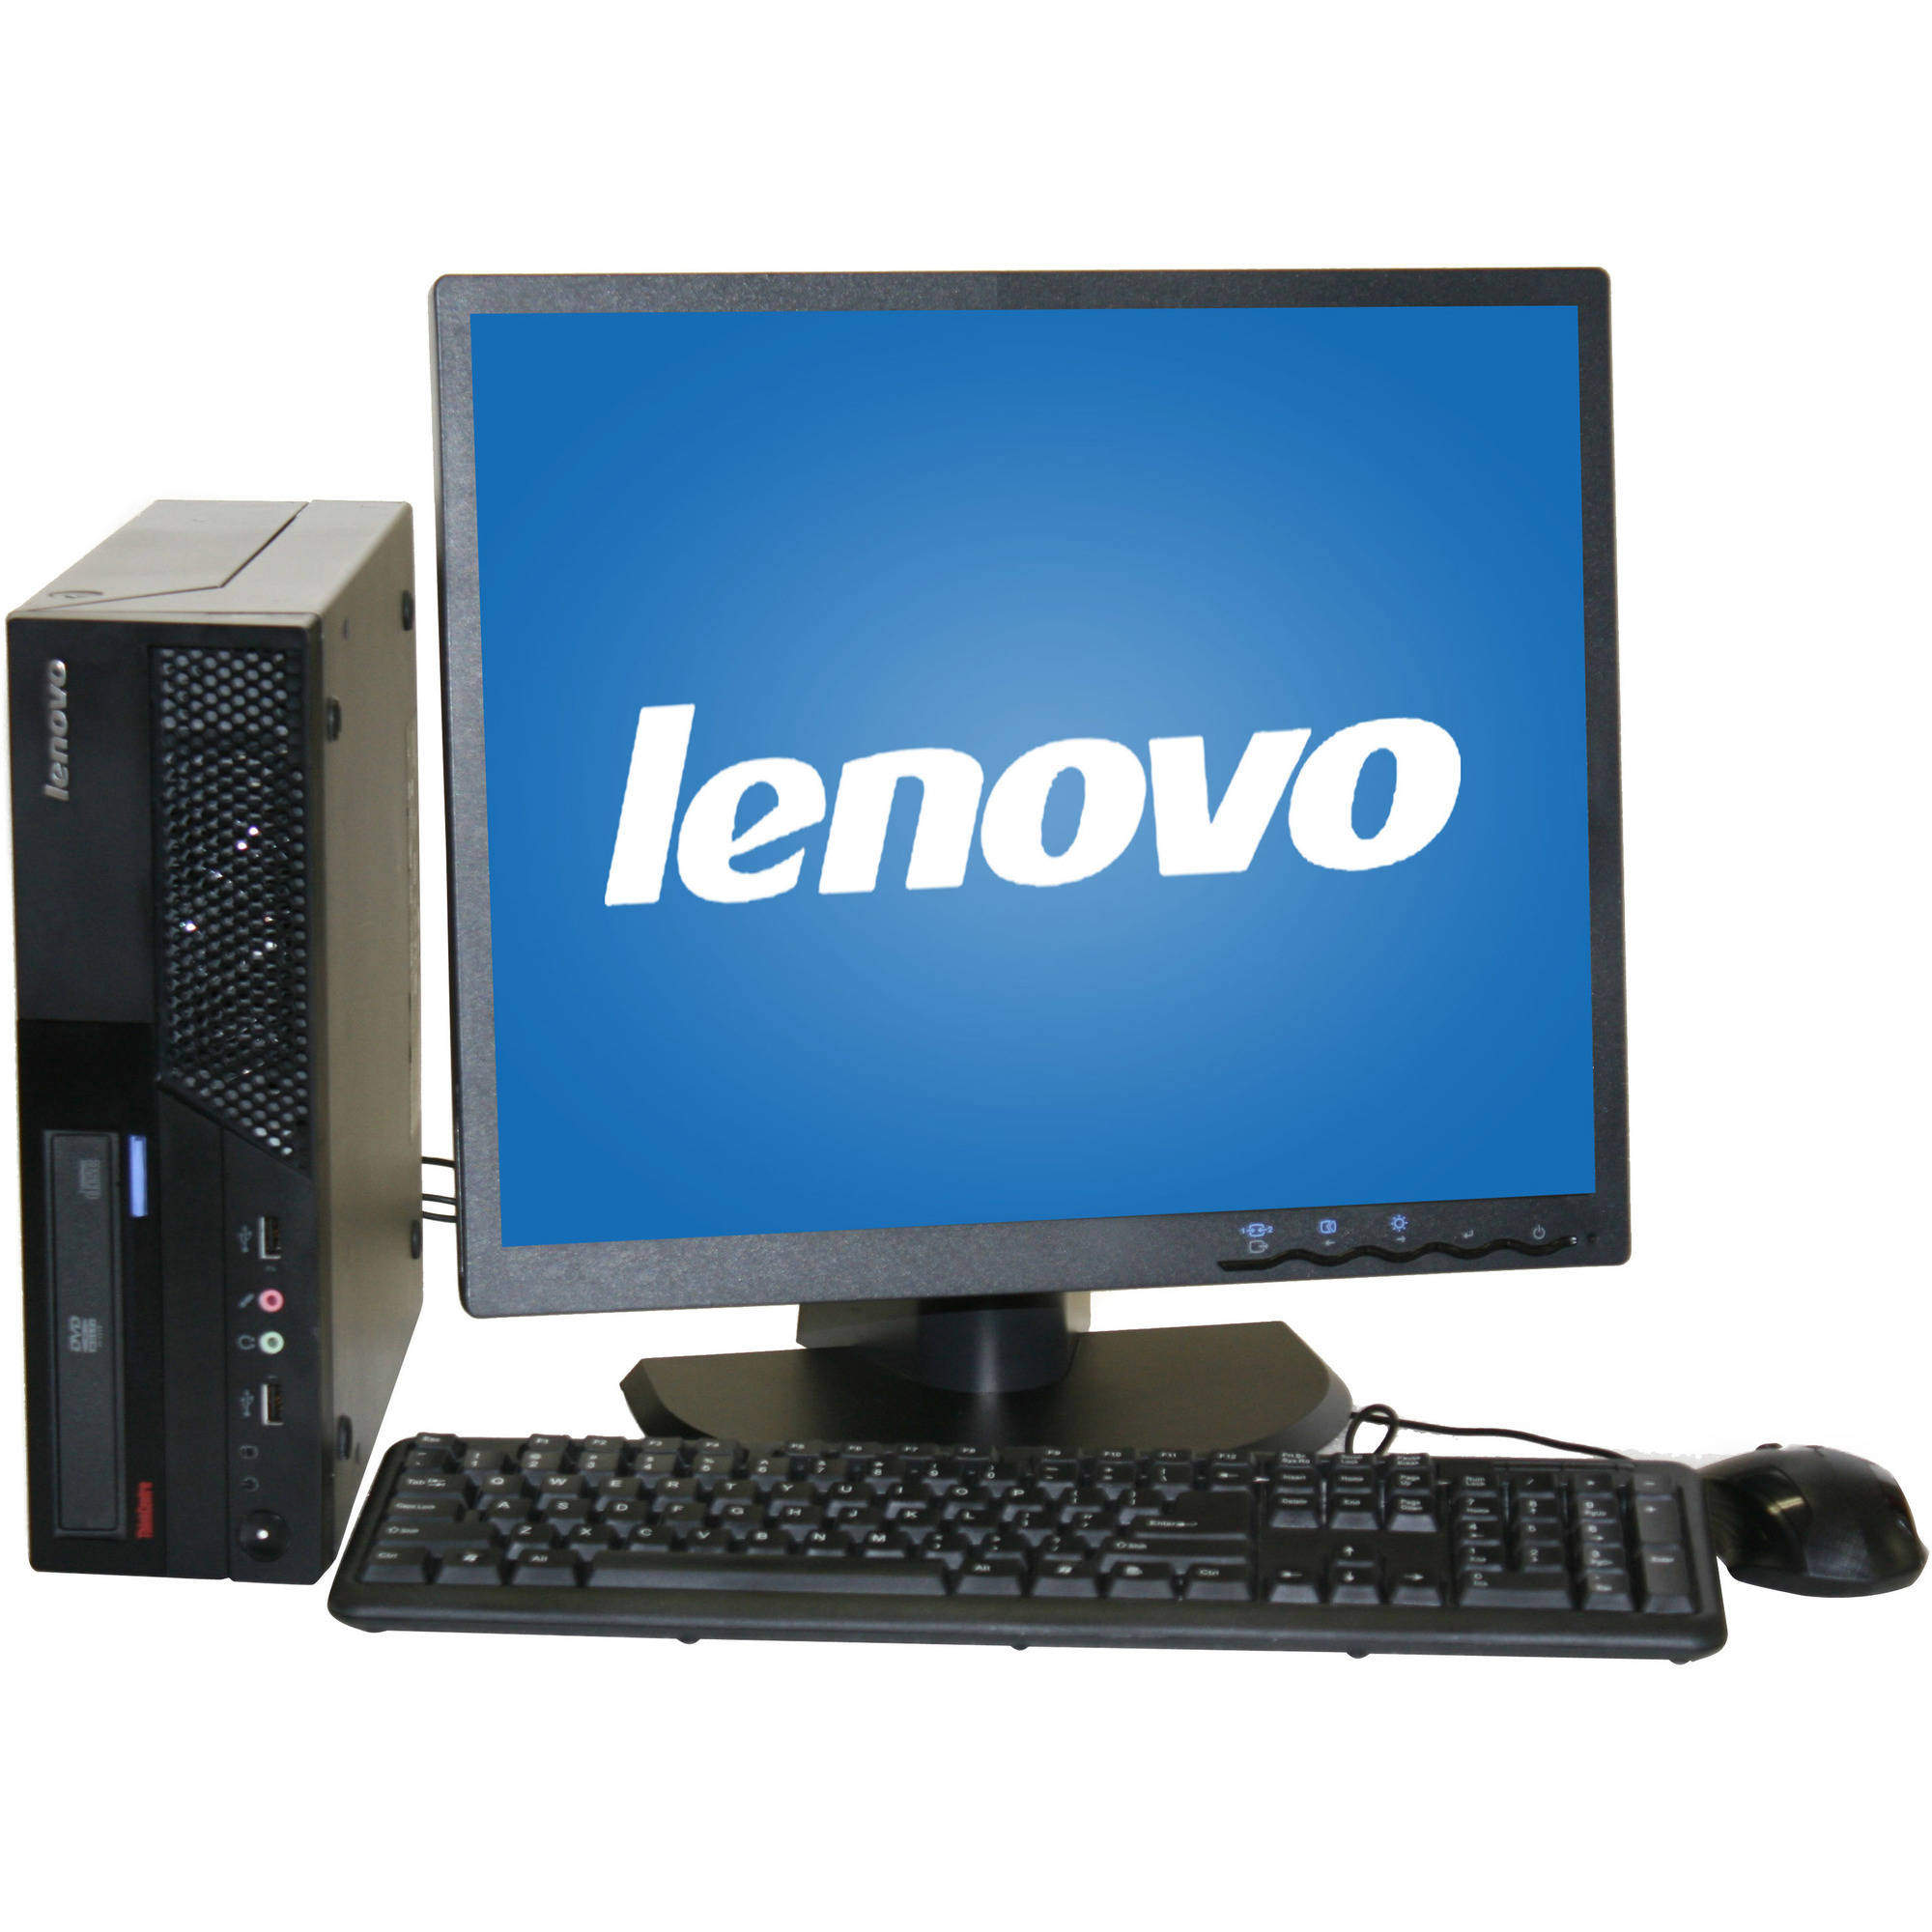 "Refurbished Lenovo M58 Desktop PC with Intel Core 2 Duo Processor, 4GB Memory, 19"" Monitor, 80GB Hard Drive and Windows 10 Home"